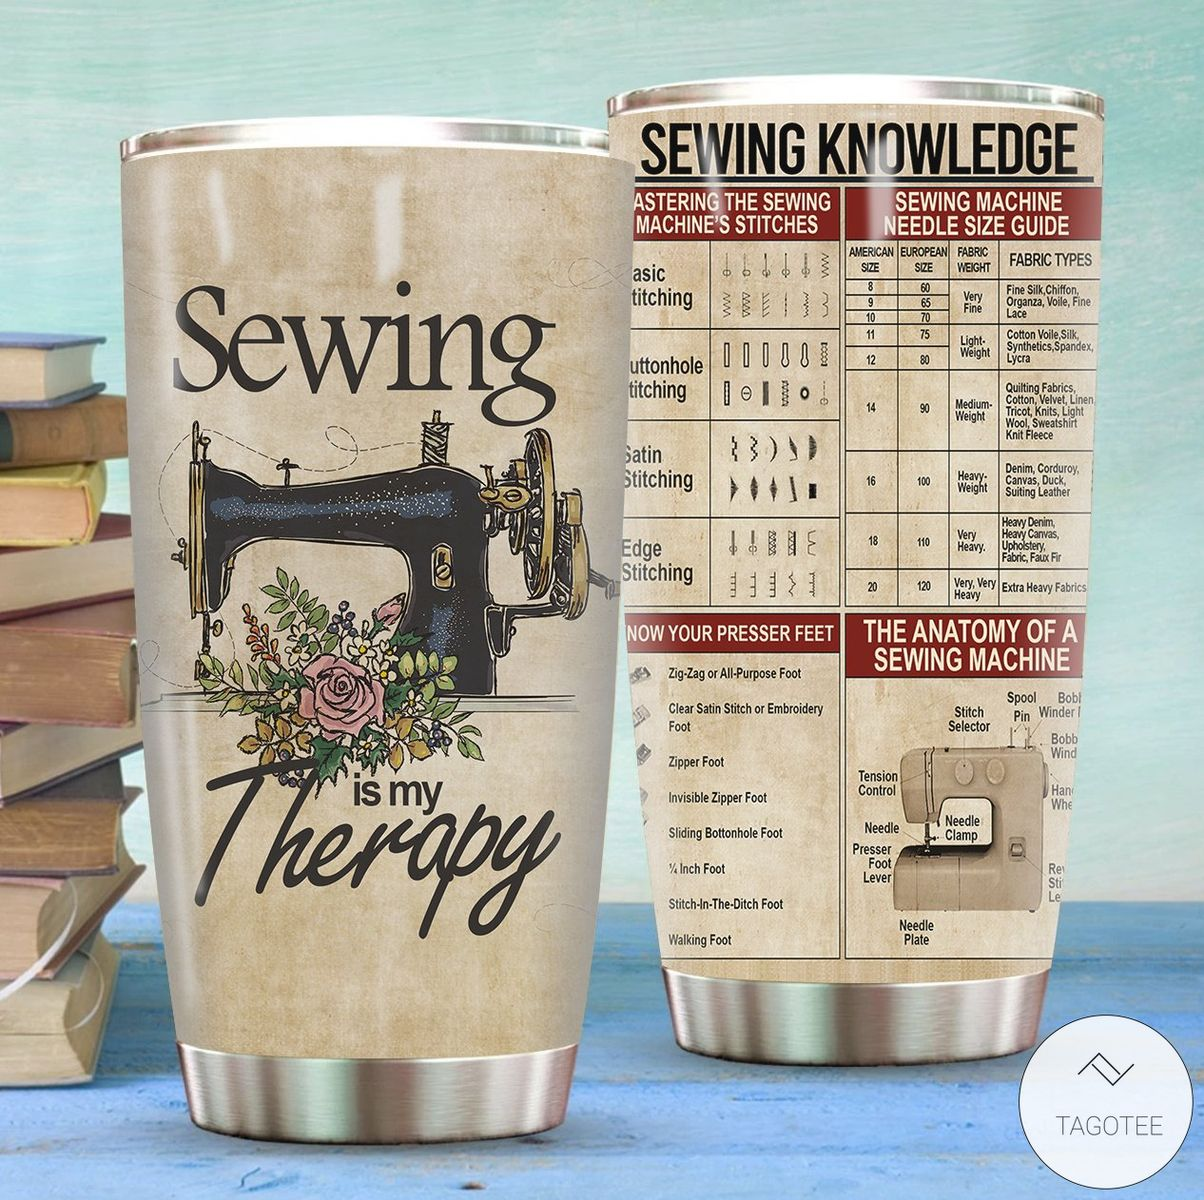 Sewing Is My Therapy Sewing Knowledge Stainless Steel Tumbler